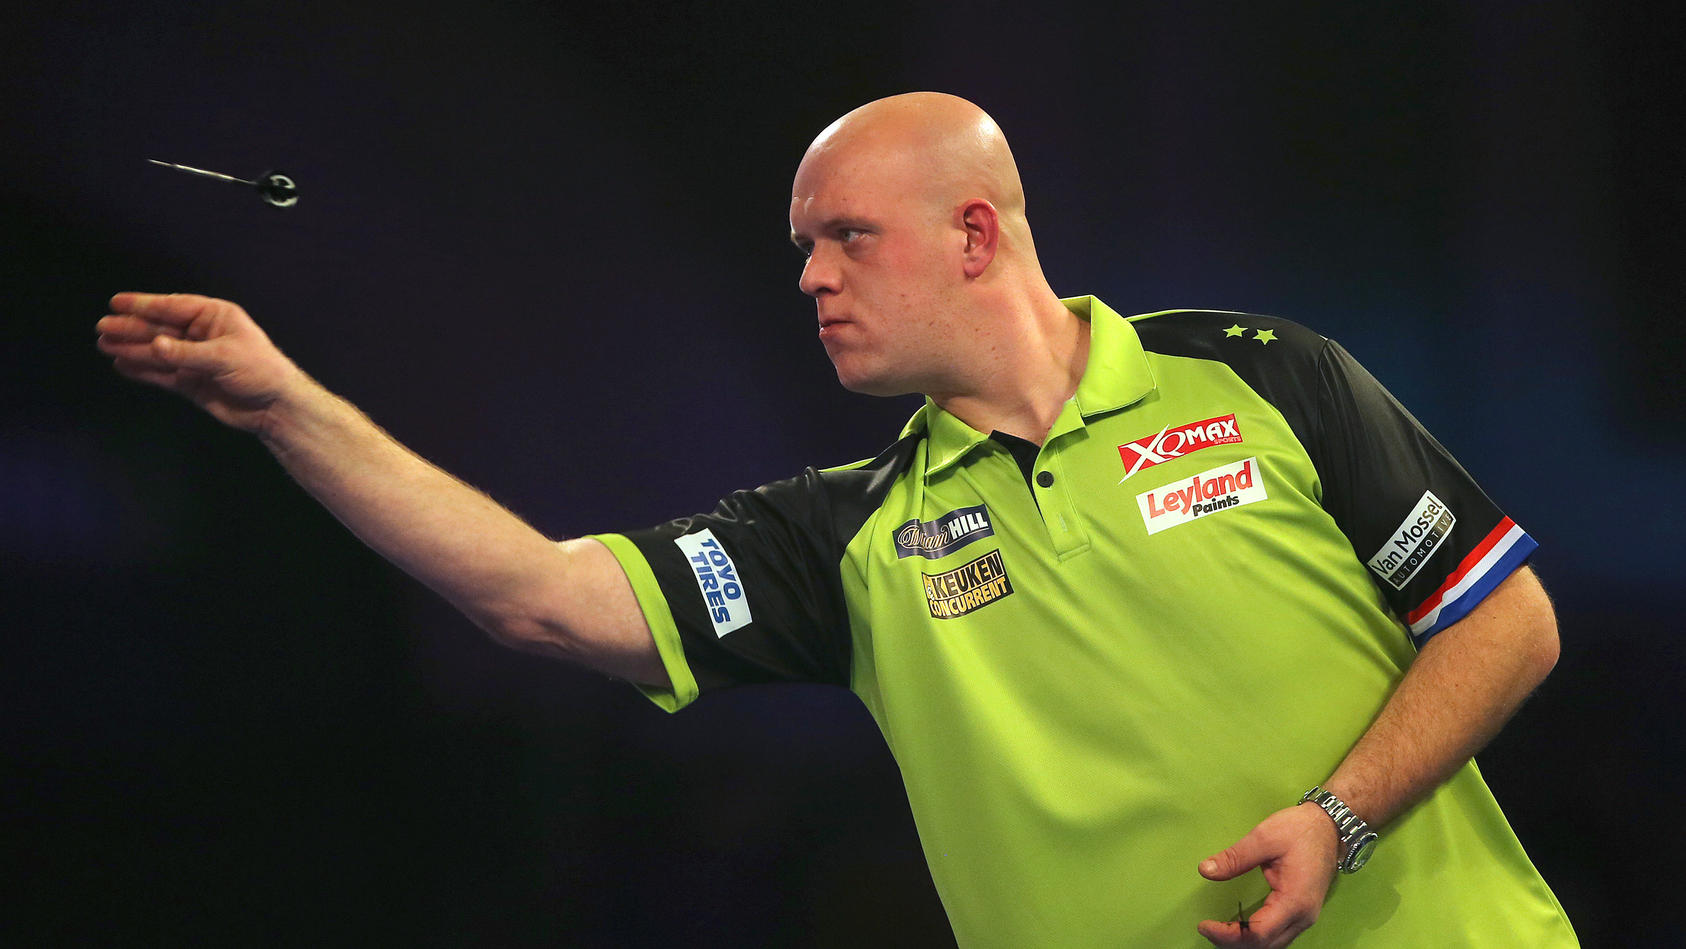 Michael van Gerwen bei der Darts-WM in London 2019.